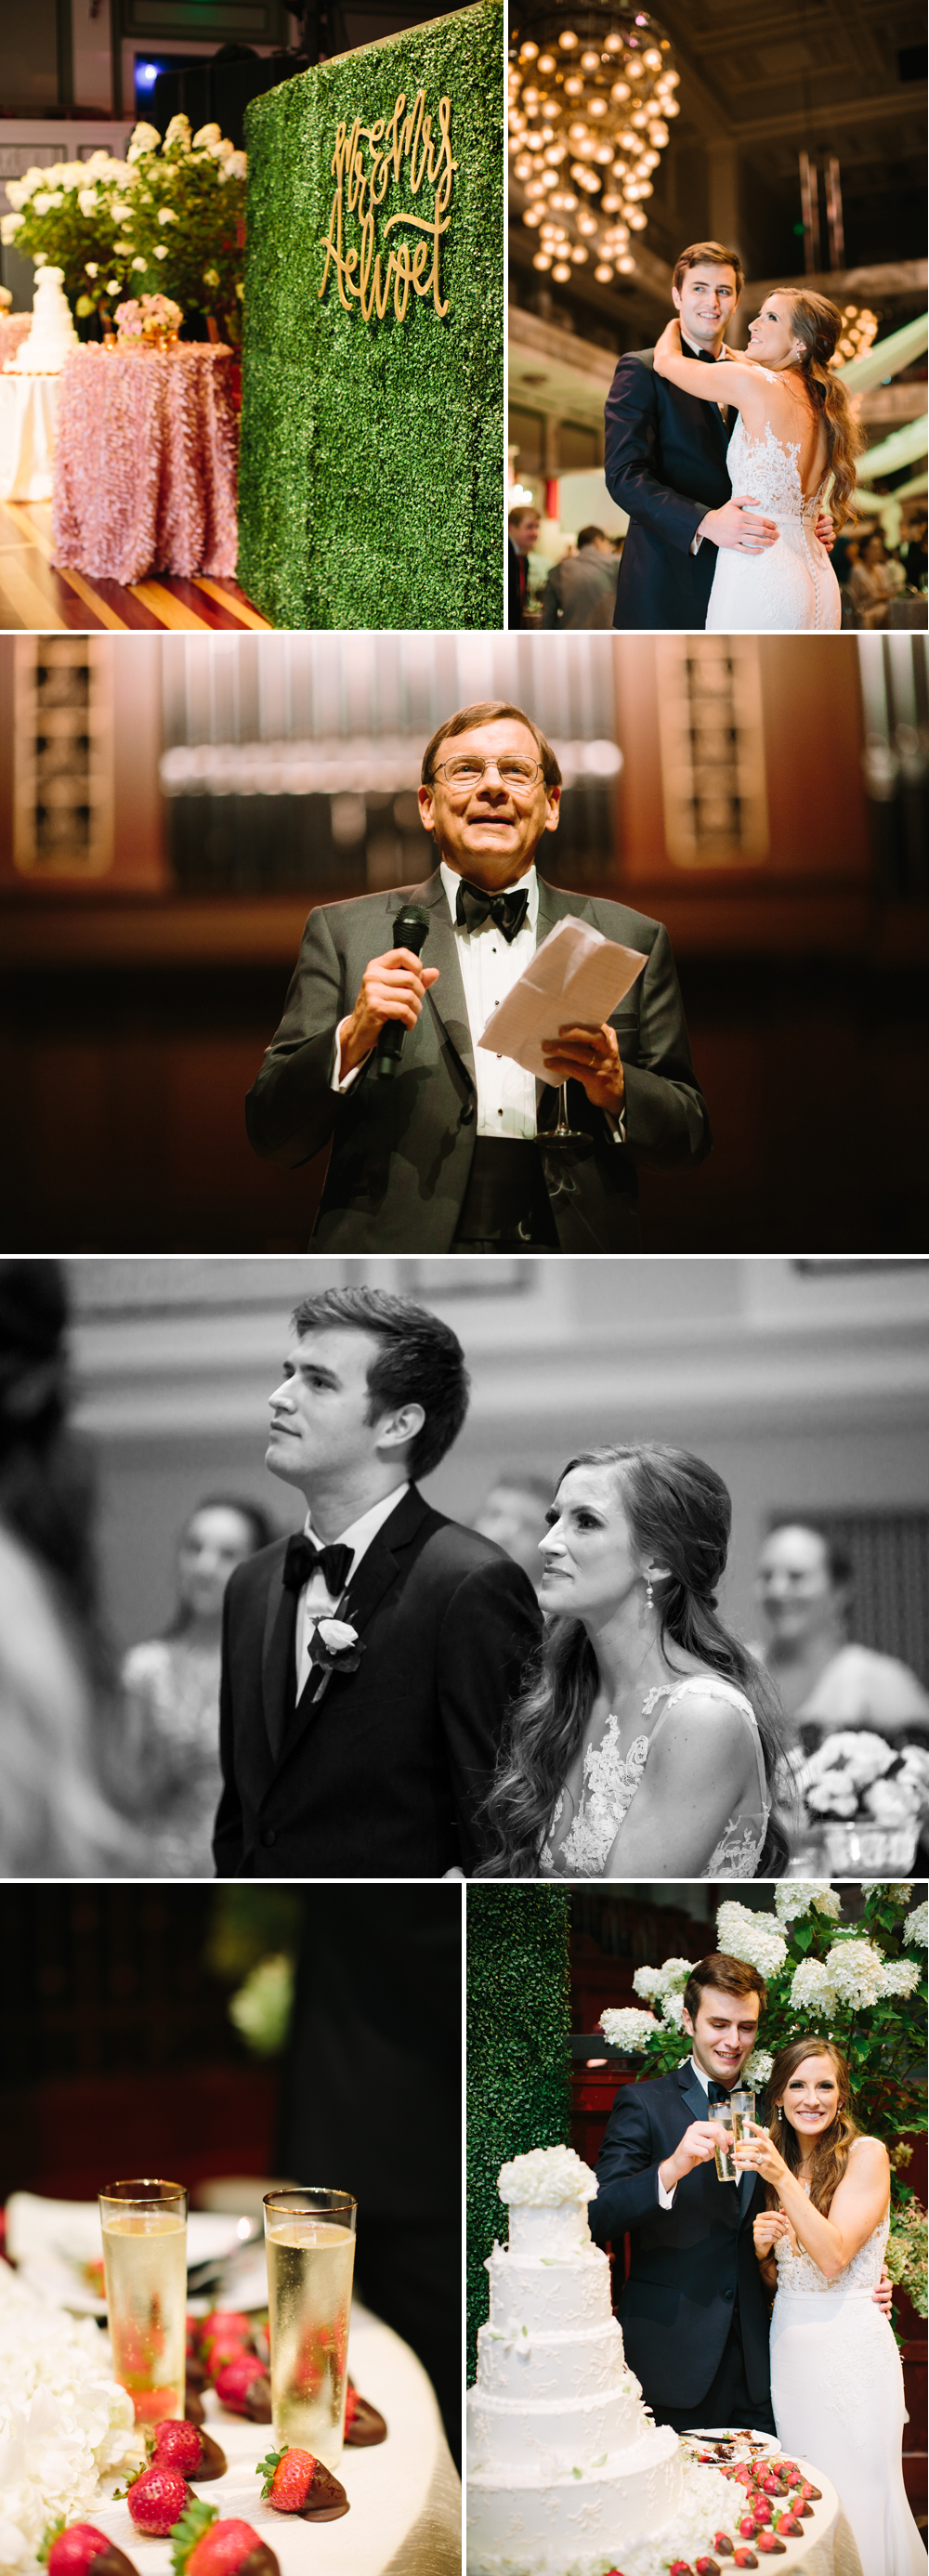 Nashville_symphony_wedding_photographer_Rachel_Moore_7.jpg